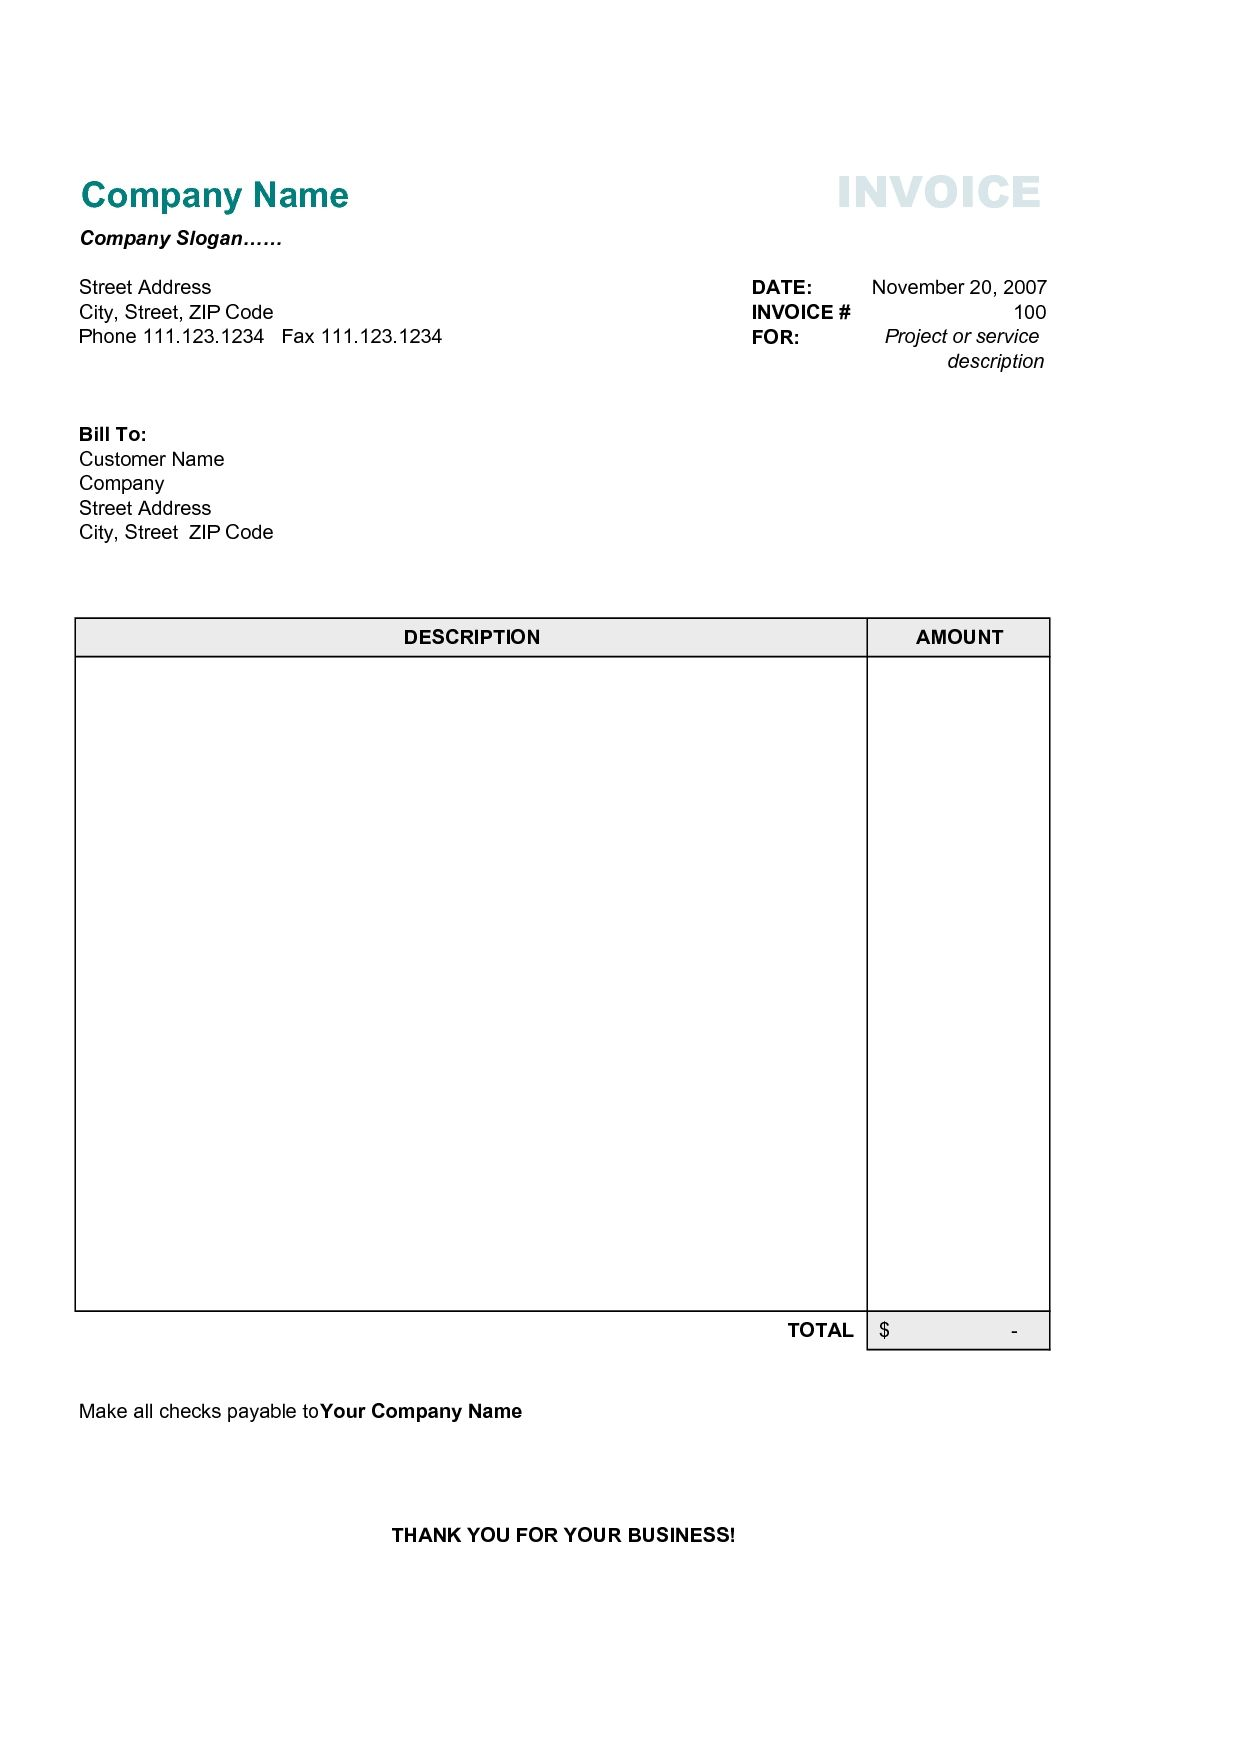 Free Business Invoice Template Best Business Template Free Invoice - How to create a business invoice for service business